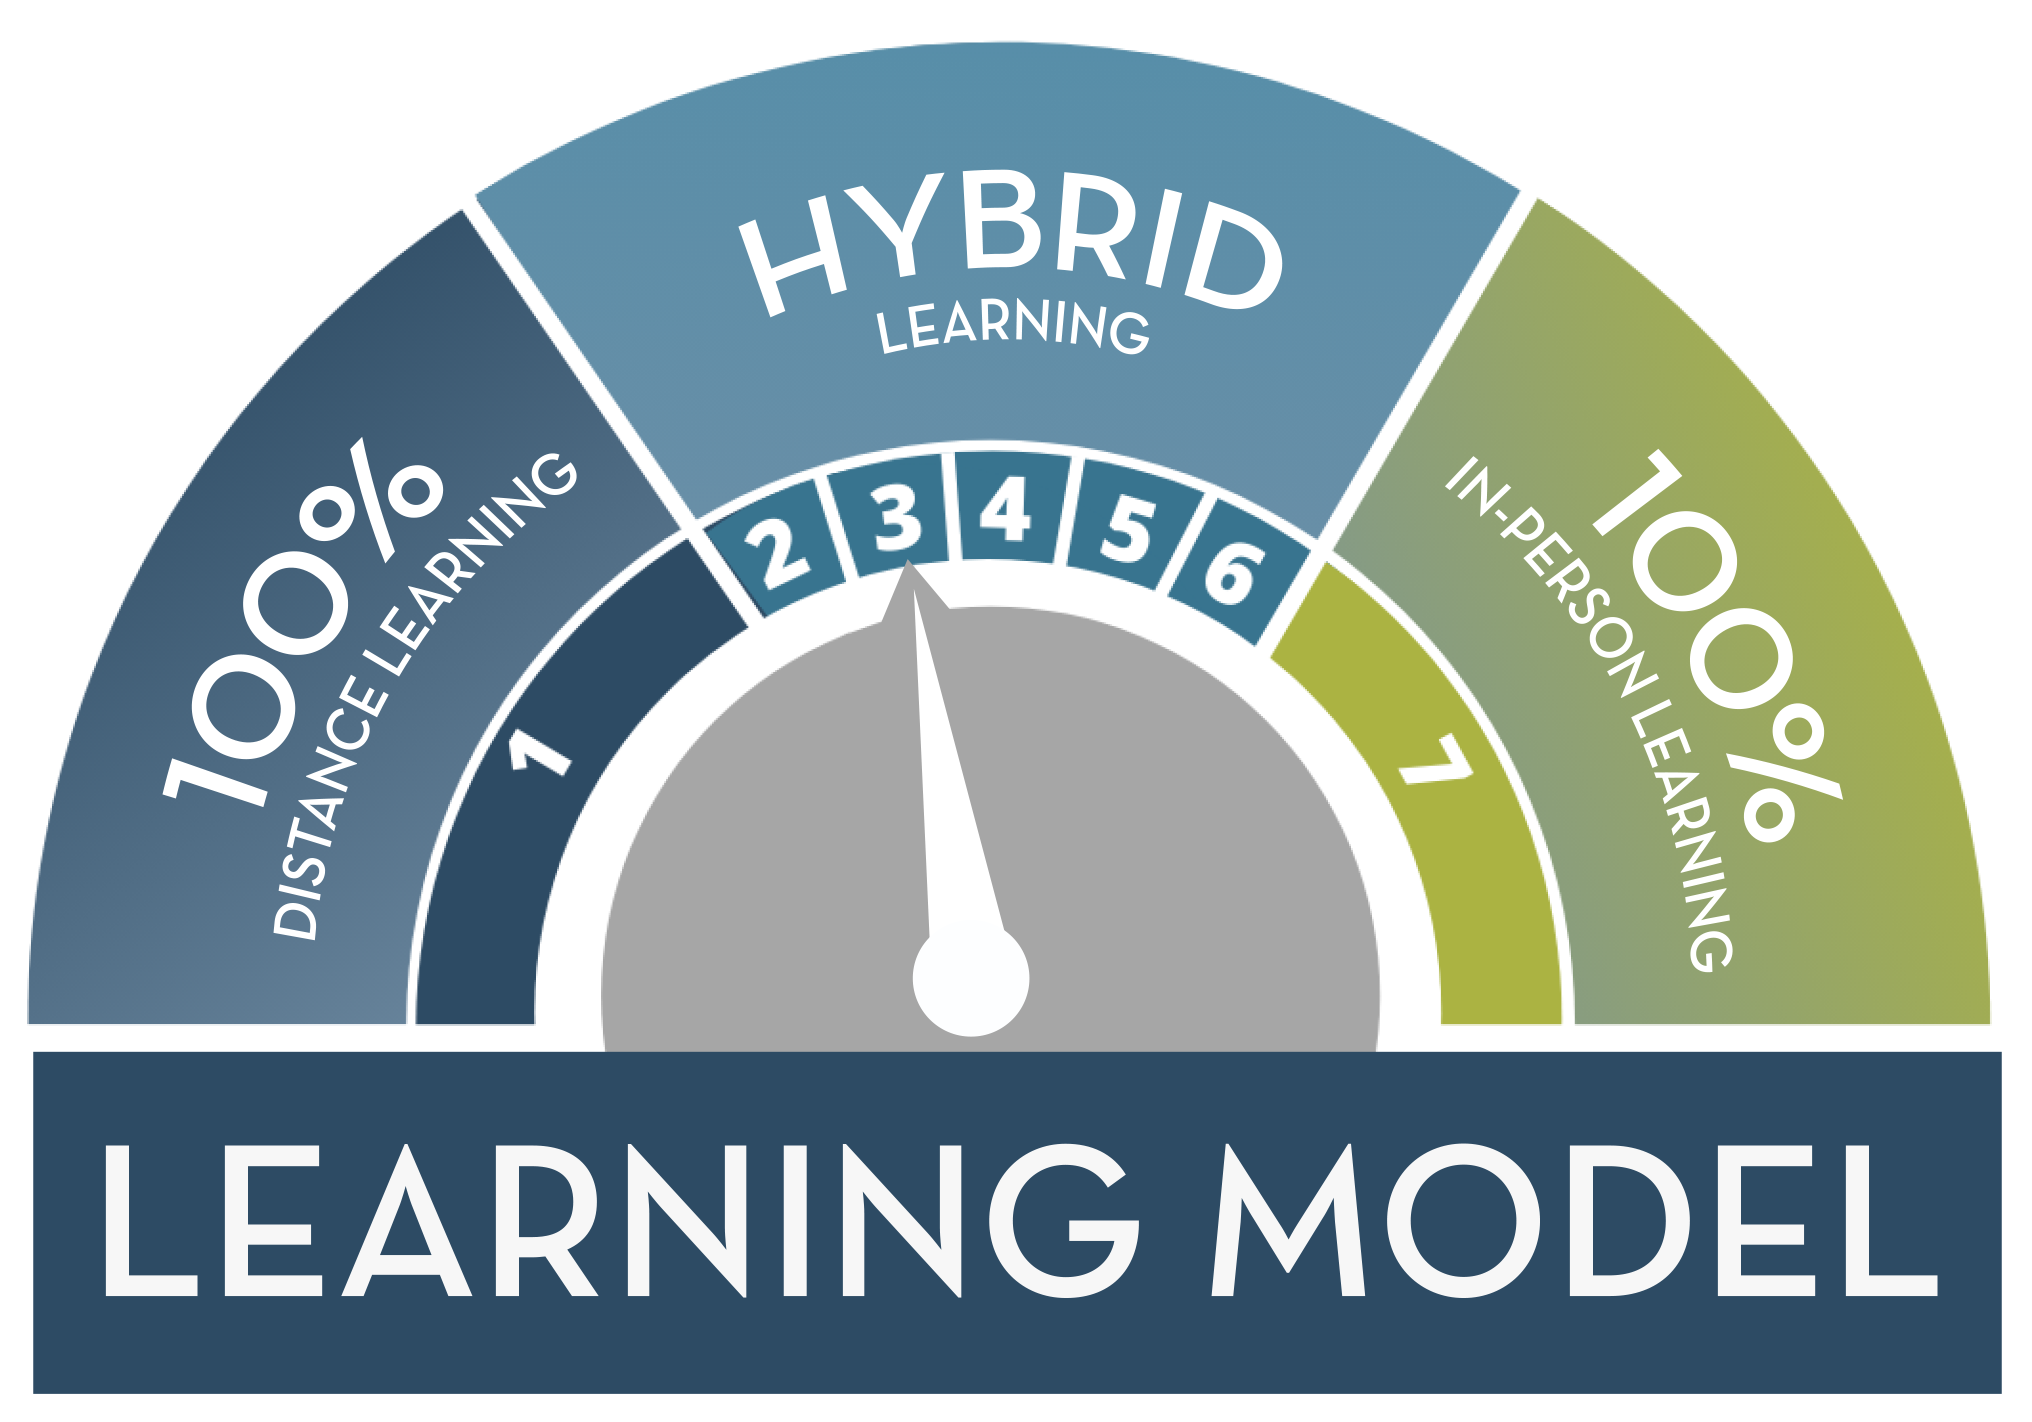 Stage 3: Hybrid Learning Model